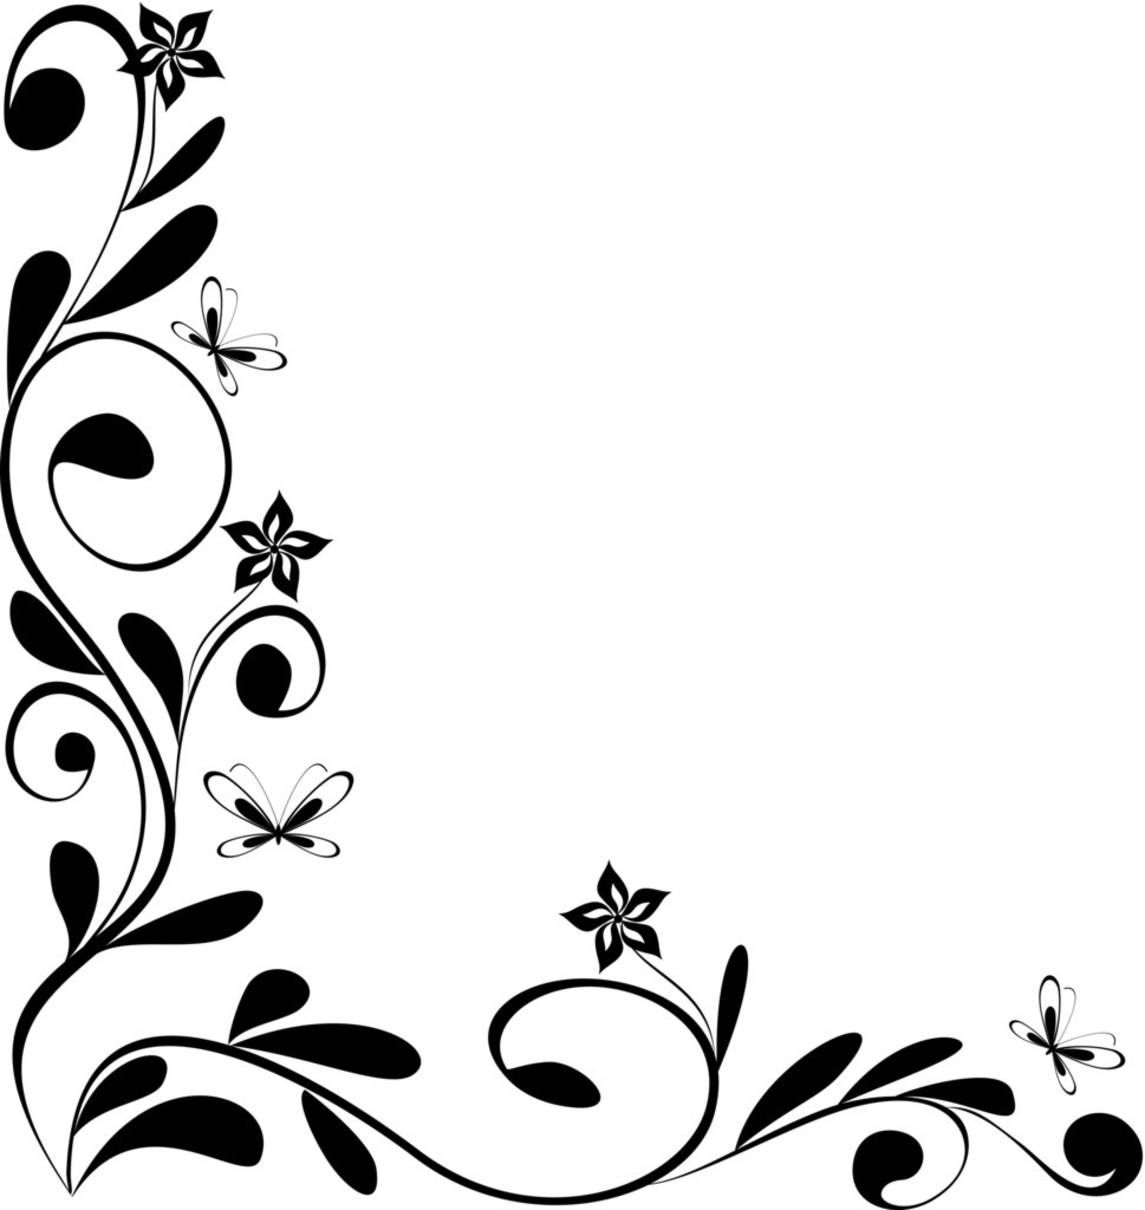 Cool Border Designs Easy Flower Drawing